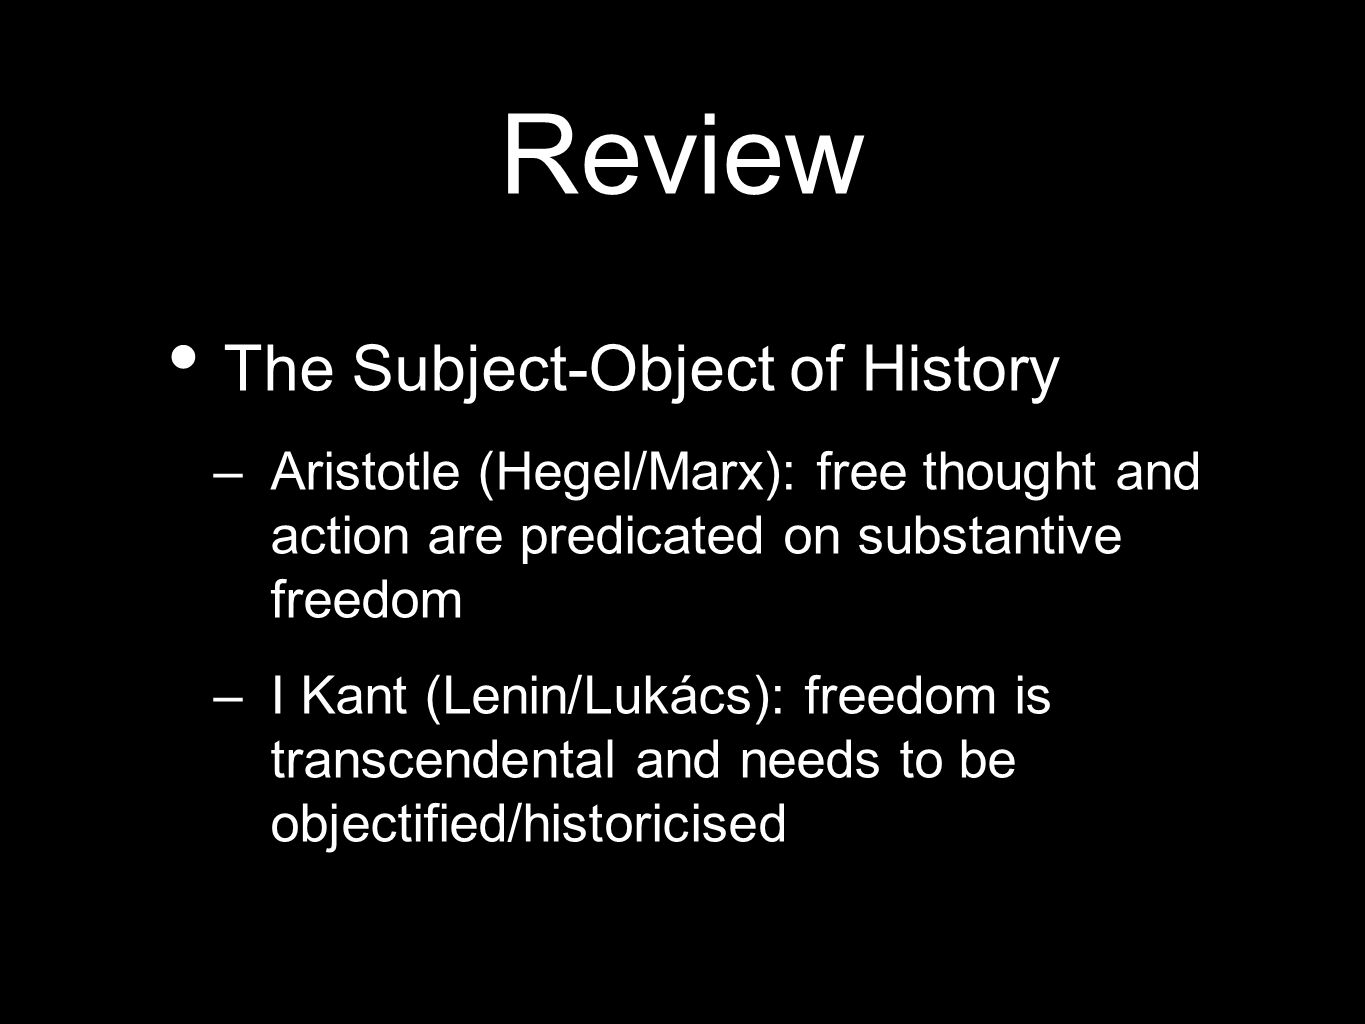 Review The Subject-Object of History –Aristotle (Hegel/Marx): free thought and action are predicated on substantive freedom –I Kant (Lenin/Lukács): freedom is transcendental and needs to be objectified/historicised